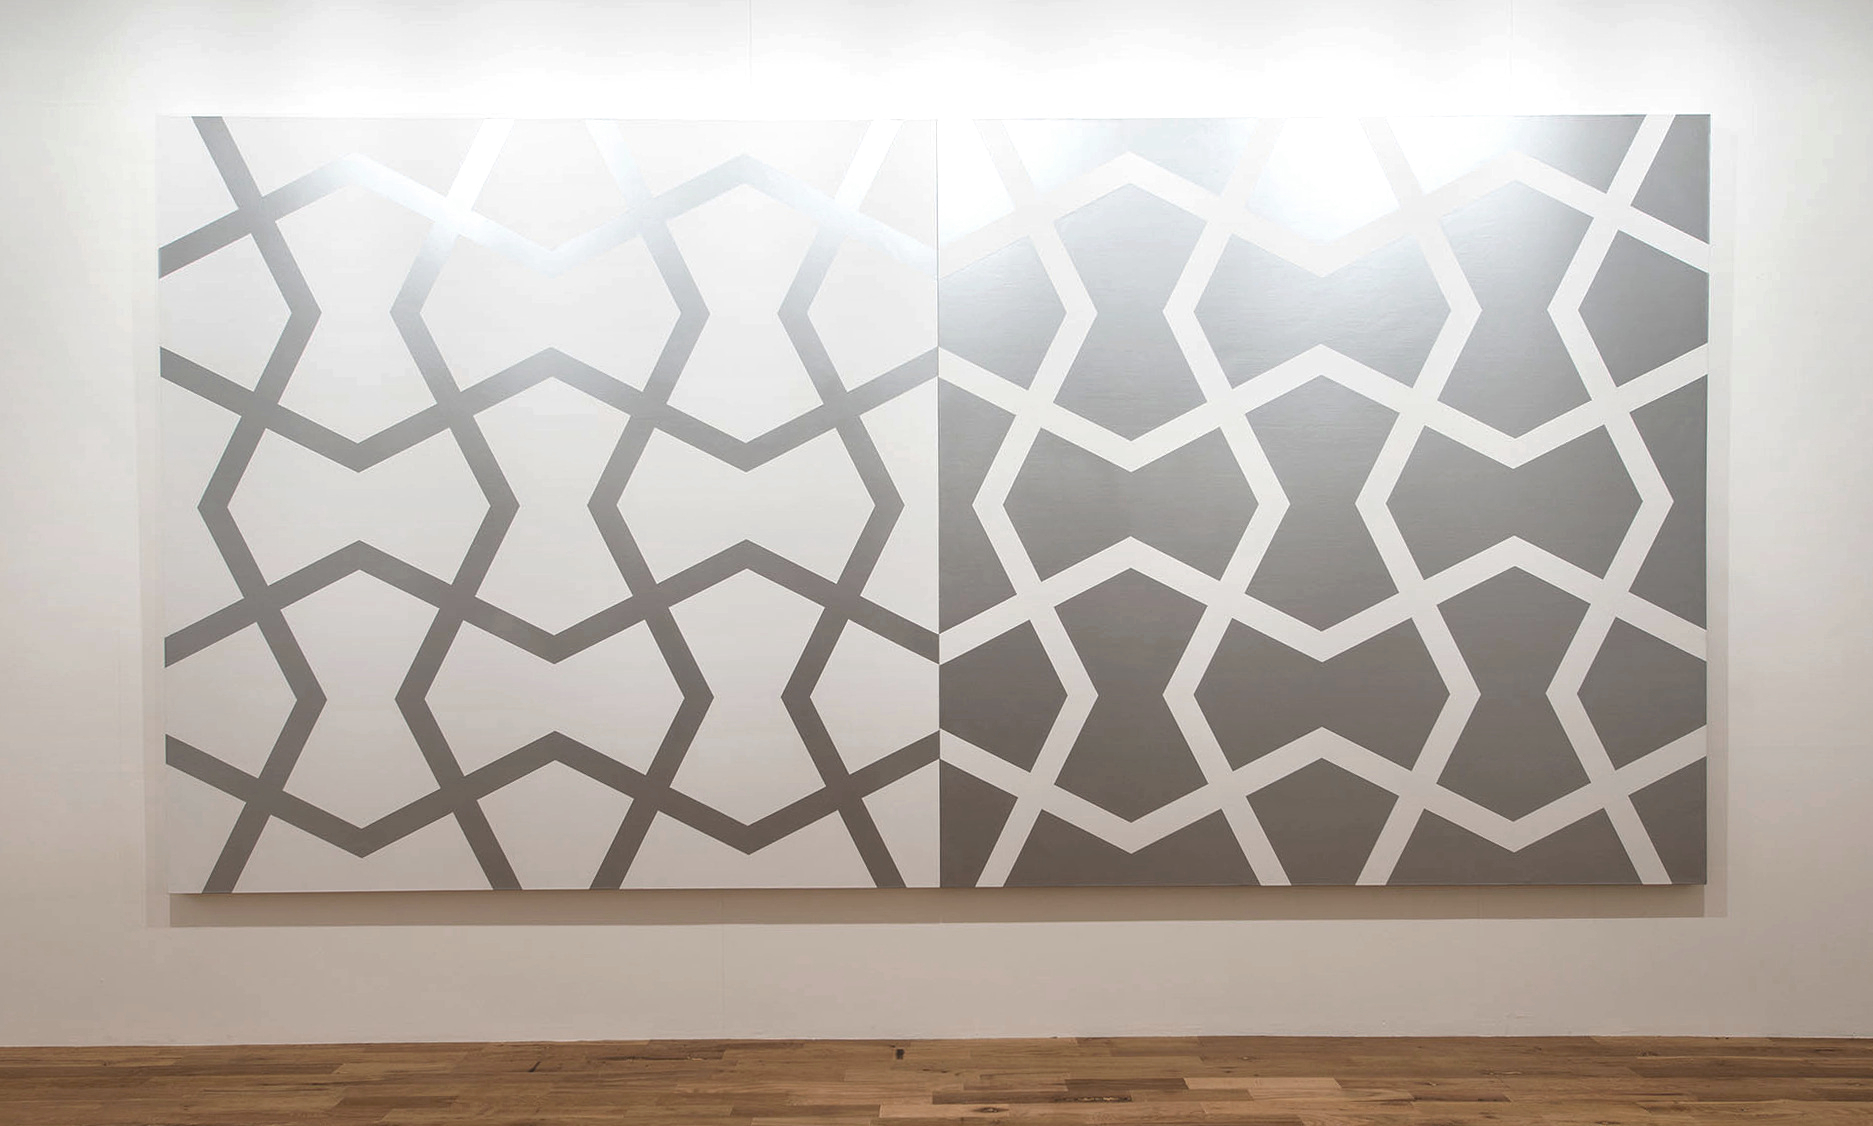 Mughal V: Silver and White   1984. Acrylic on 2 canvases. 96 x 192 in., 243.8 x 487.7 cm.